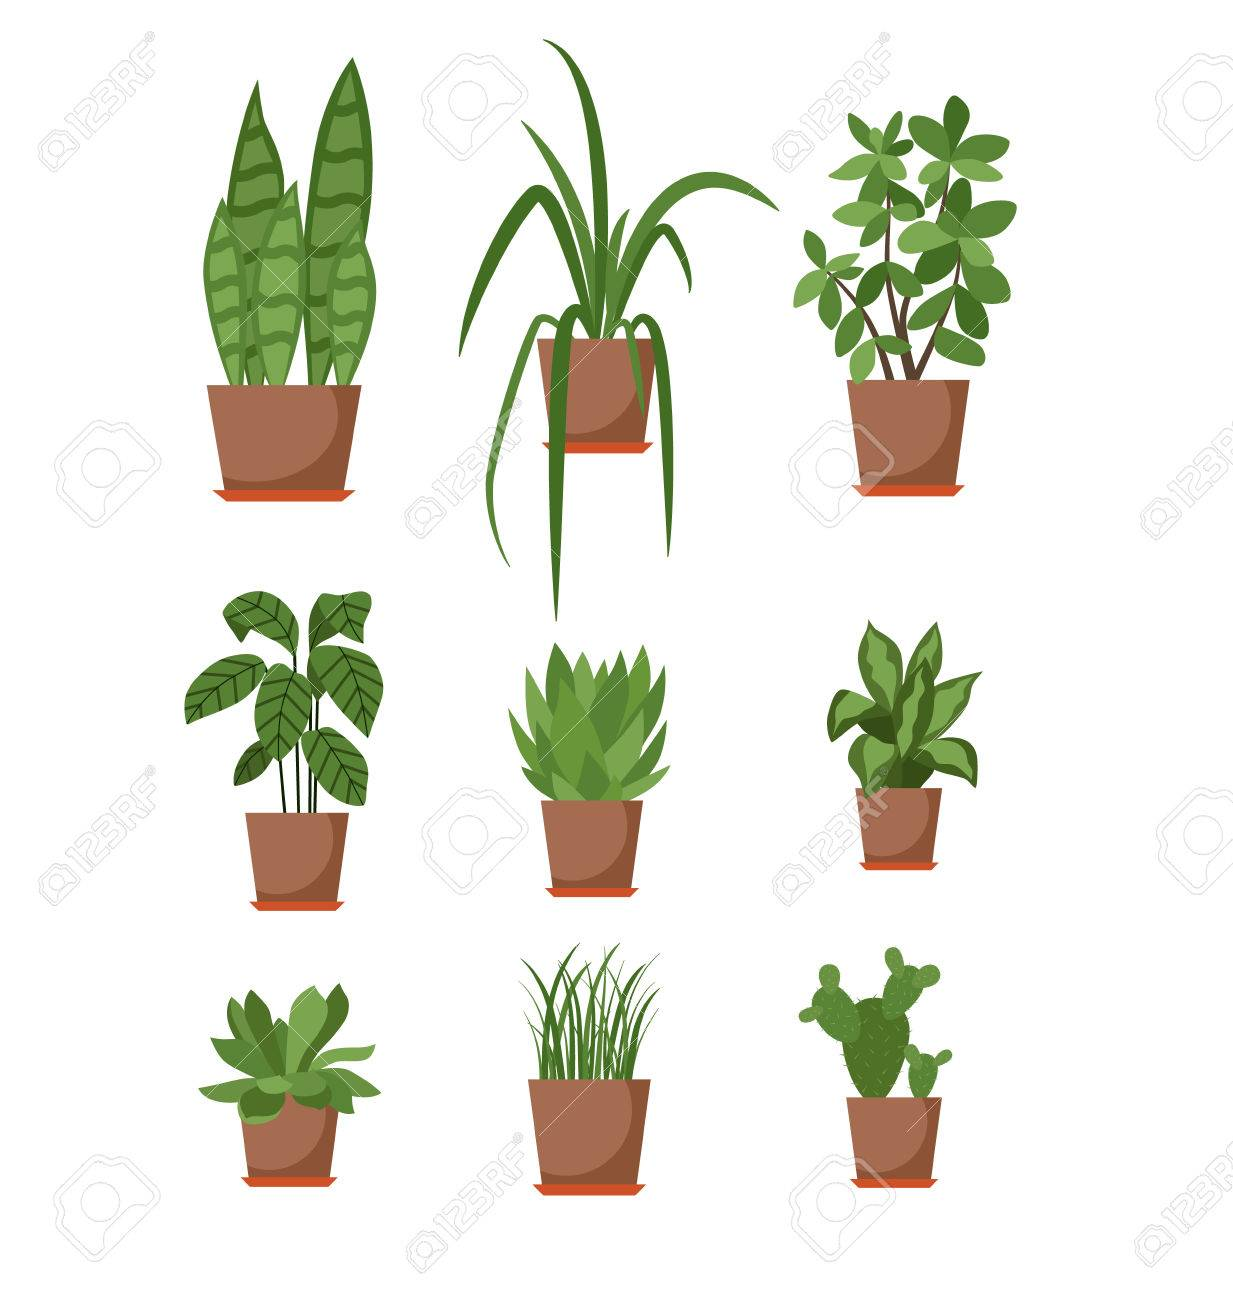 Set Of House Plant Isolated Vector Flat House Plant Pot Illustration Collection Of Flat Home Plant Pot Colorful House Plants In Pot For Your Design Home Plants Icons Set Royalty Free Cliparts